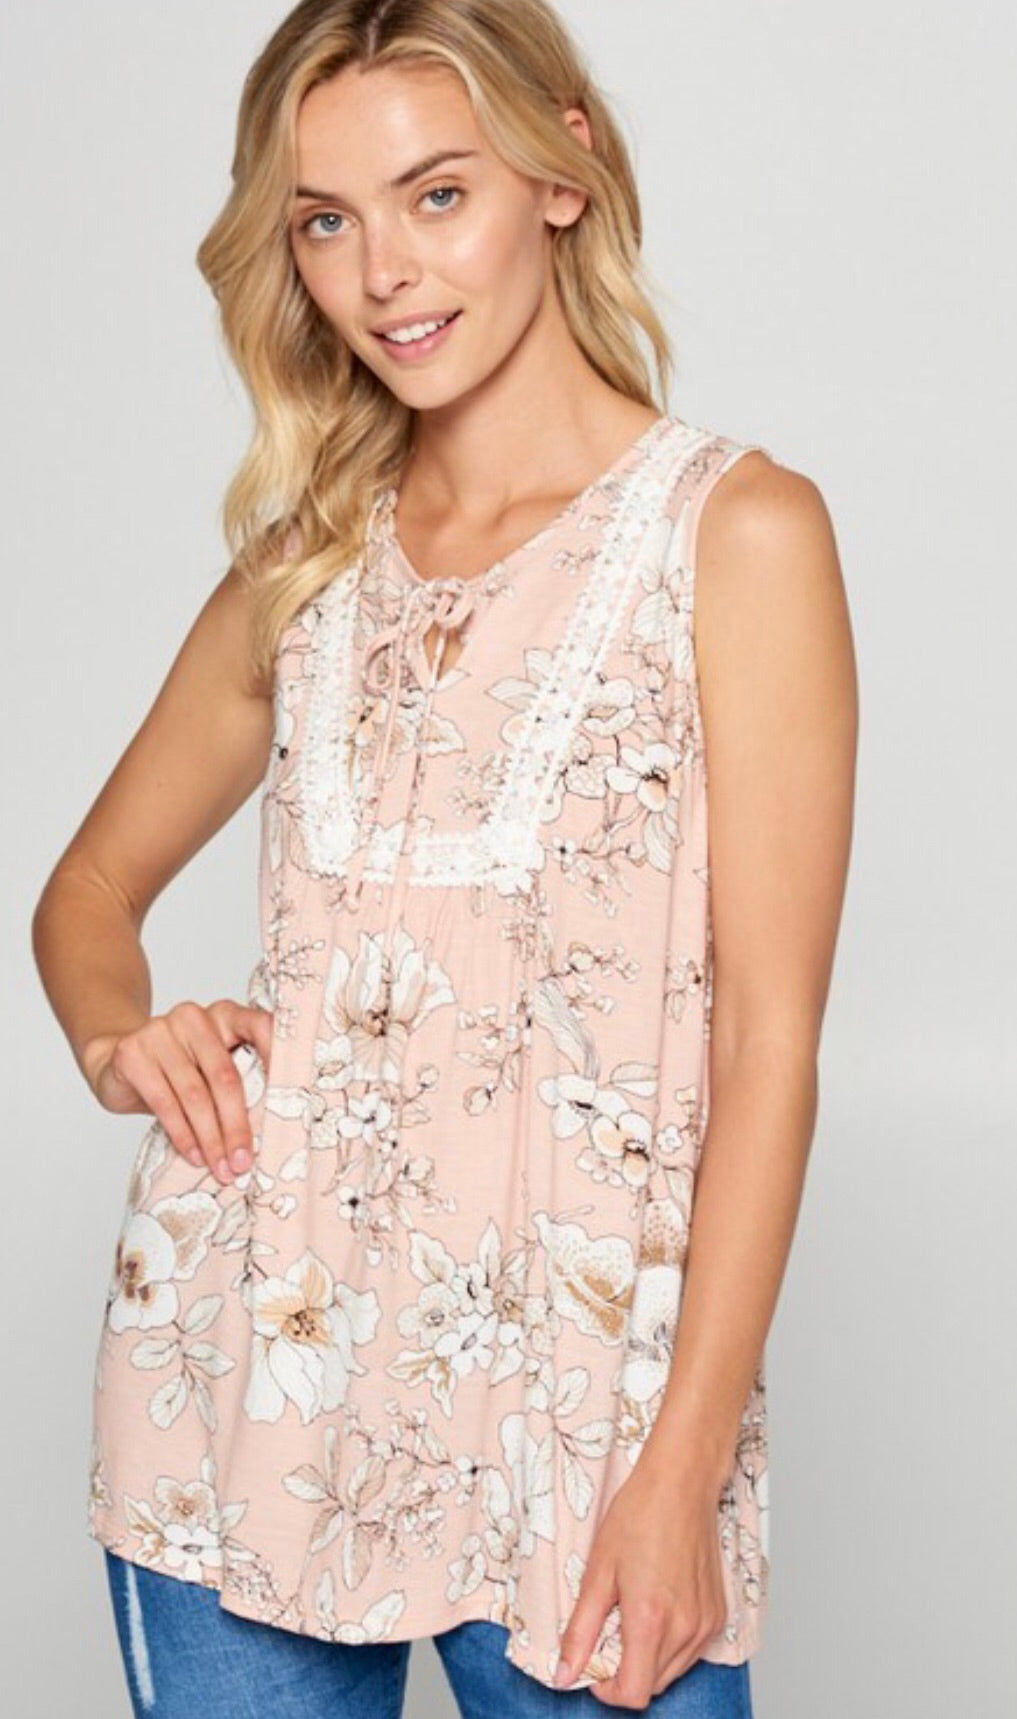 Faith Apparel Floral Print Tank W/ Lace Trim Plus